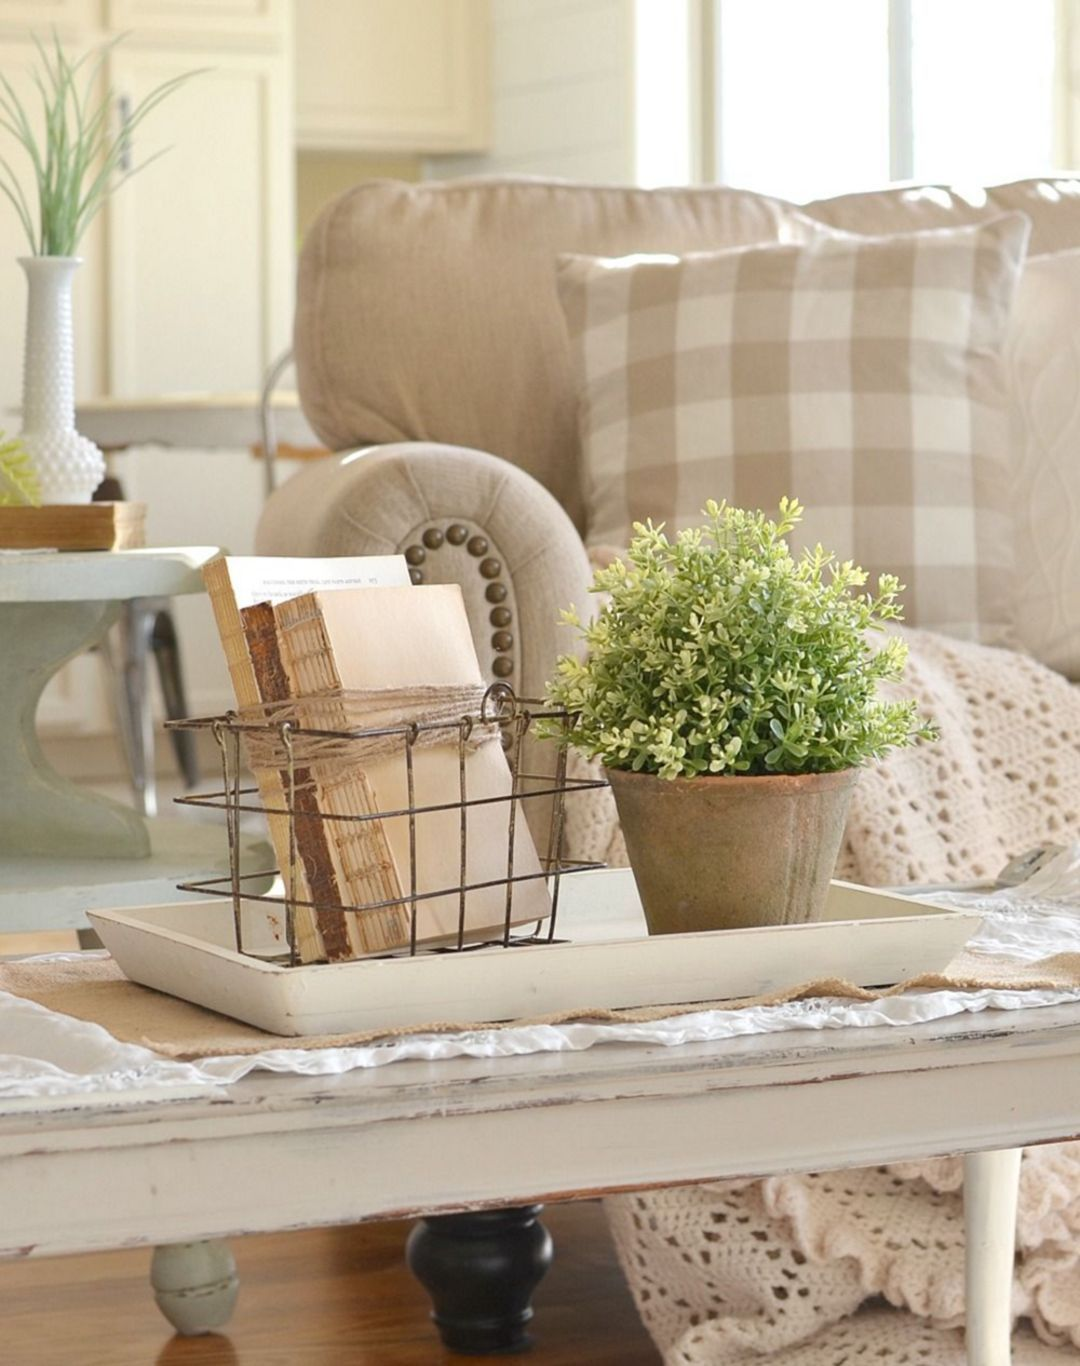 25+ Great Farmhouse Coffee Table Design and Decor Ideas | Design ...